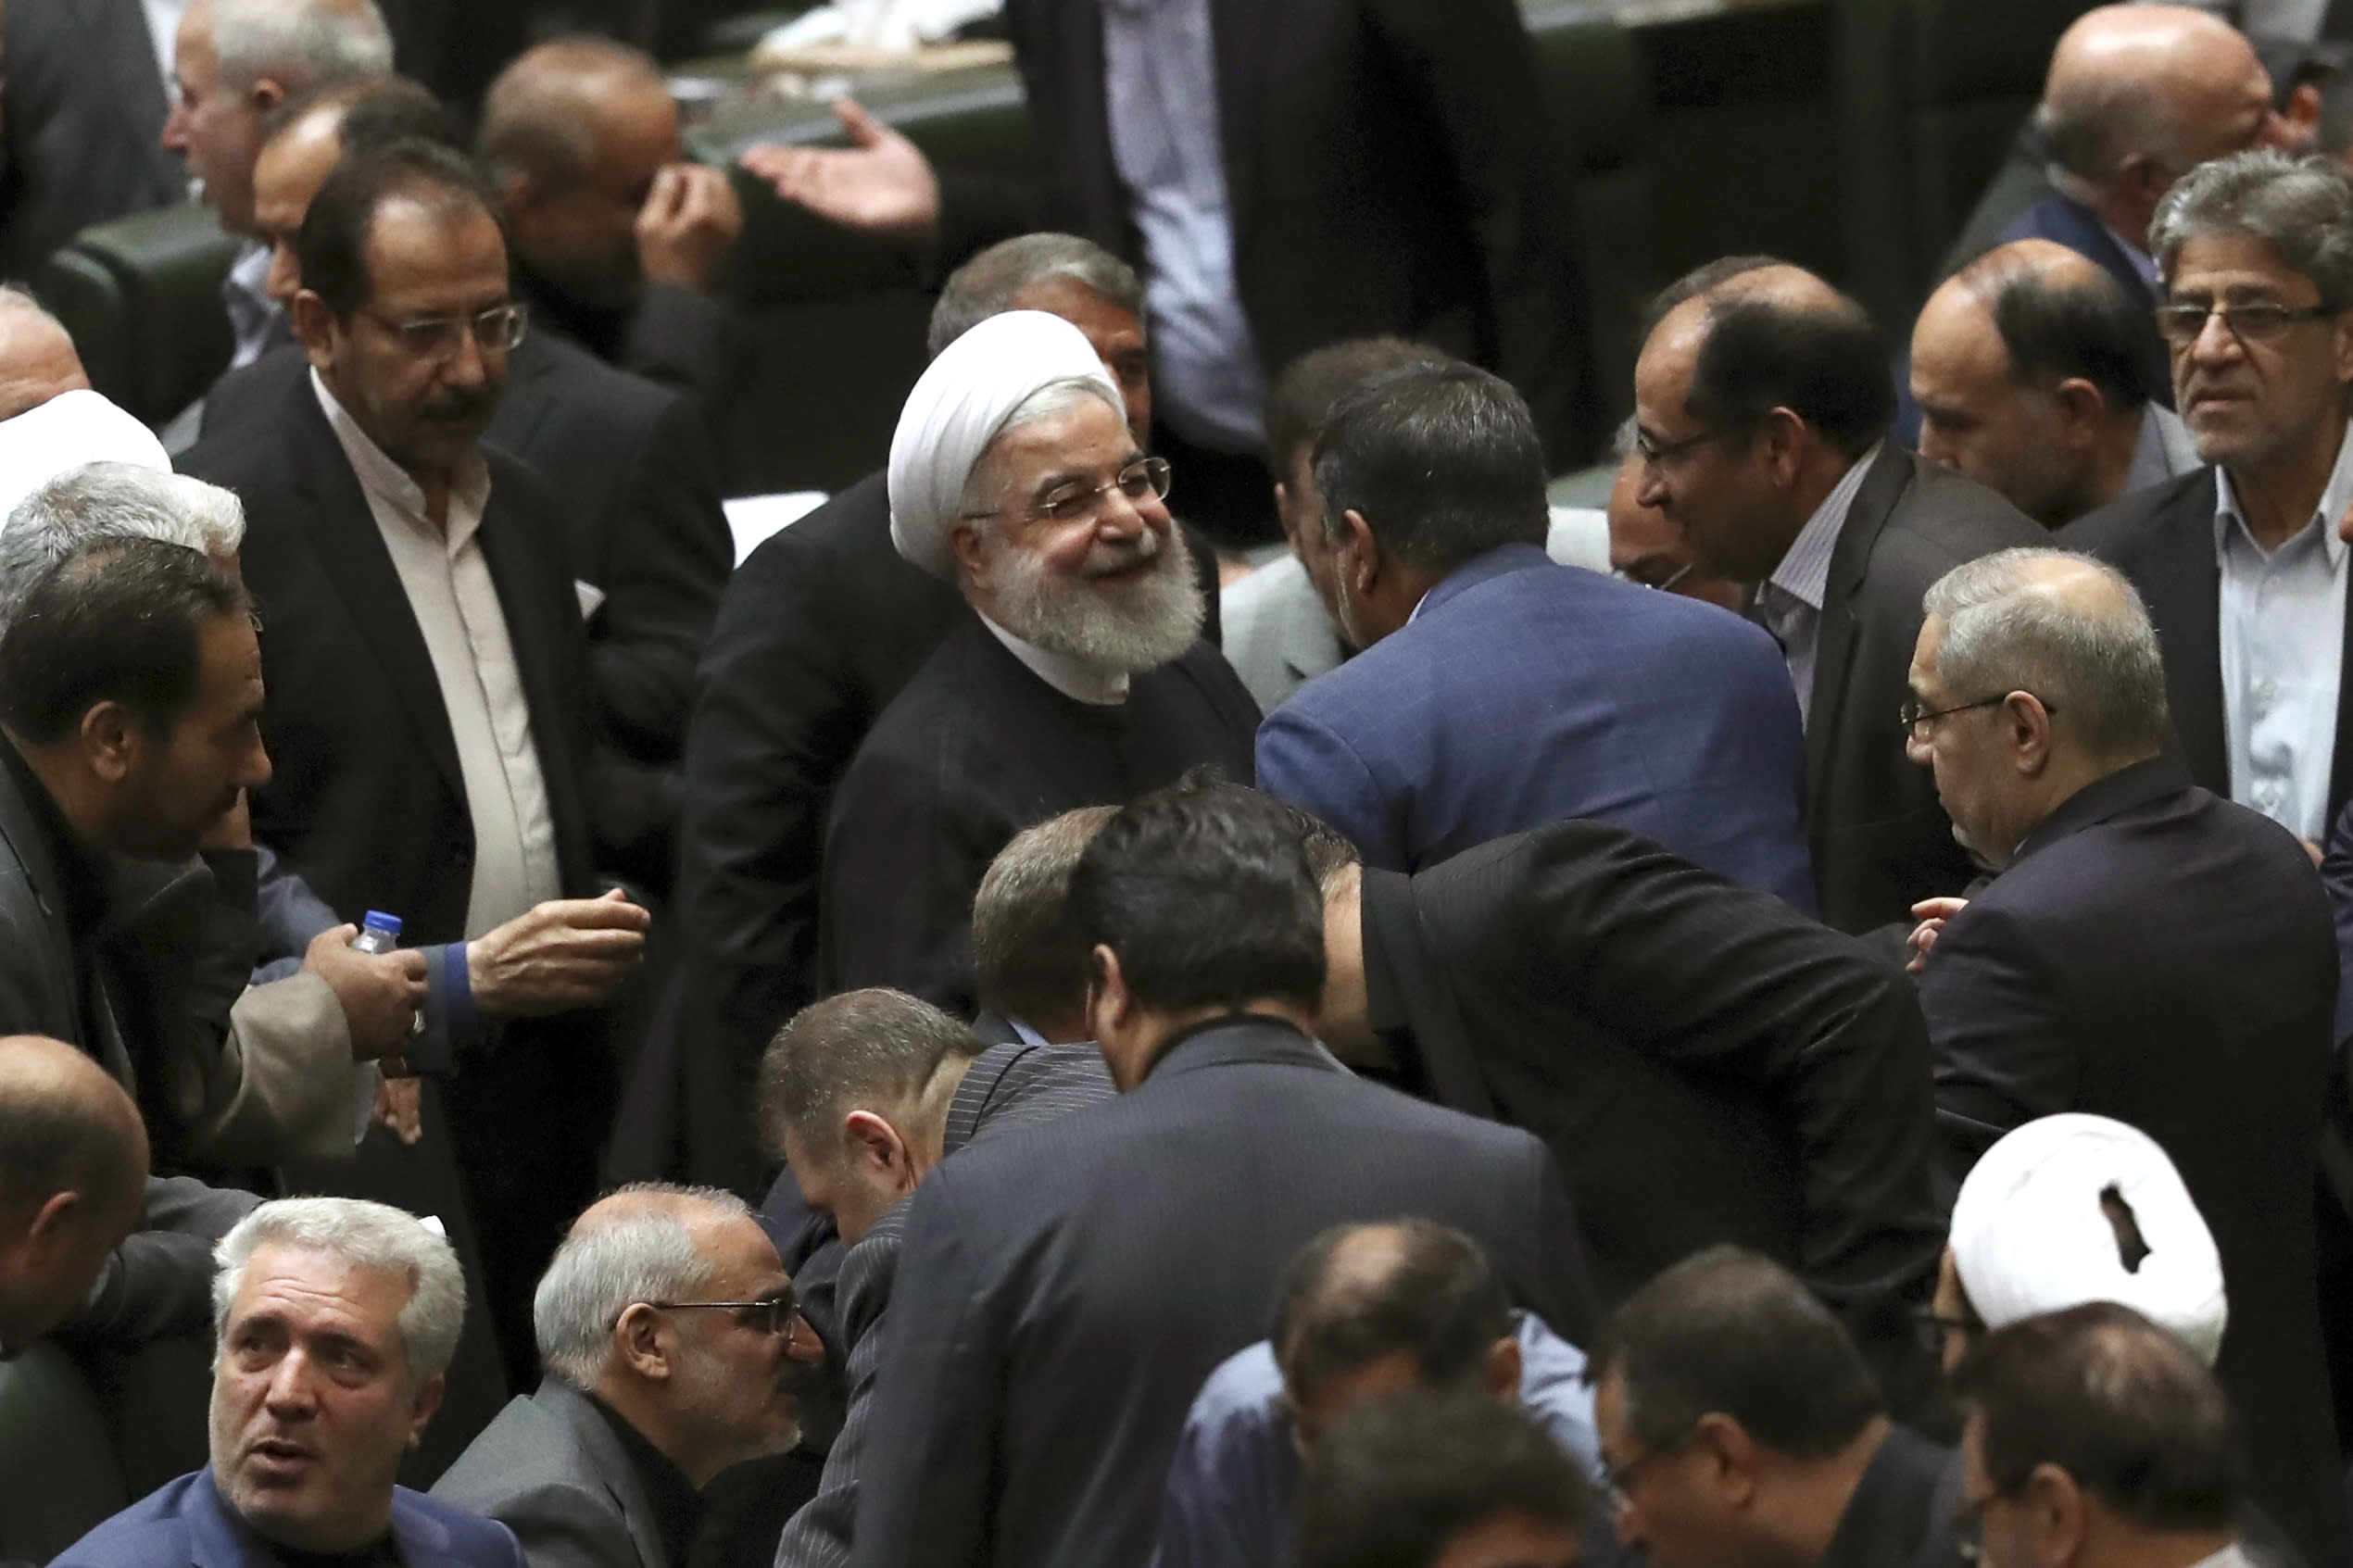 Iranian President Hassan Rouhani, center, listens to a lawmaker after defending his proposed tourism and education ministers, in Tehran, Iran, Tuesday, Sept. 3, 2019. Rouhani said European nations are failing to implement their commitments following the U.S. pullout from the 2015 nuclear deal with Tehran. (AP Photo/Vahid Salemi)